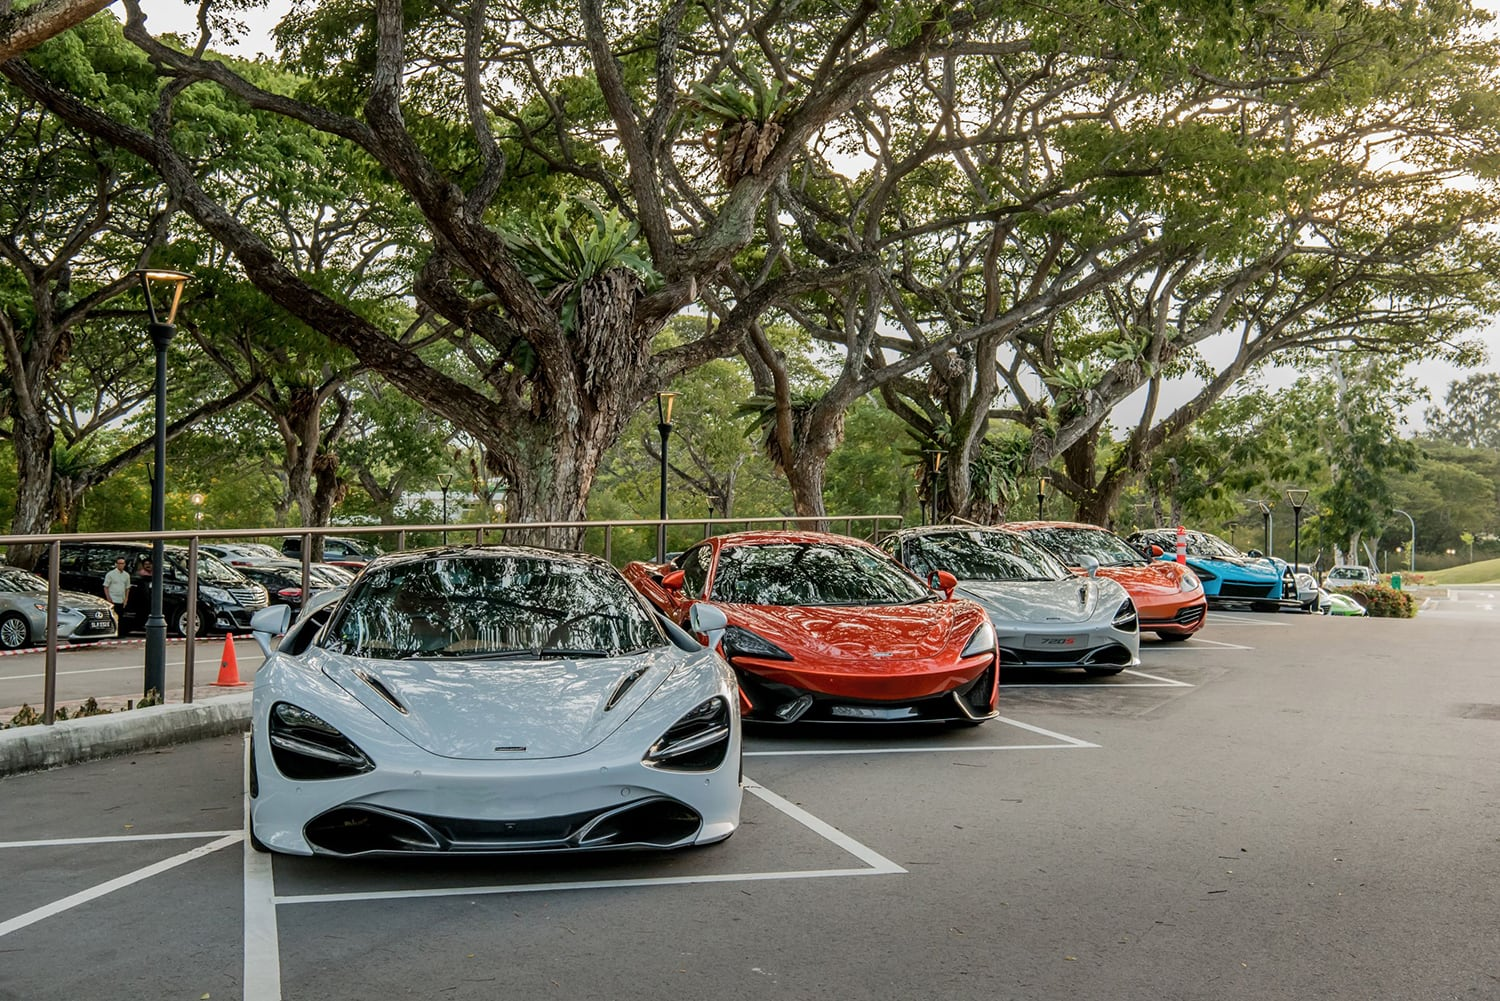 The line-up of McLarens outside Tanah Merah Country Club